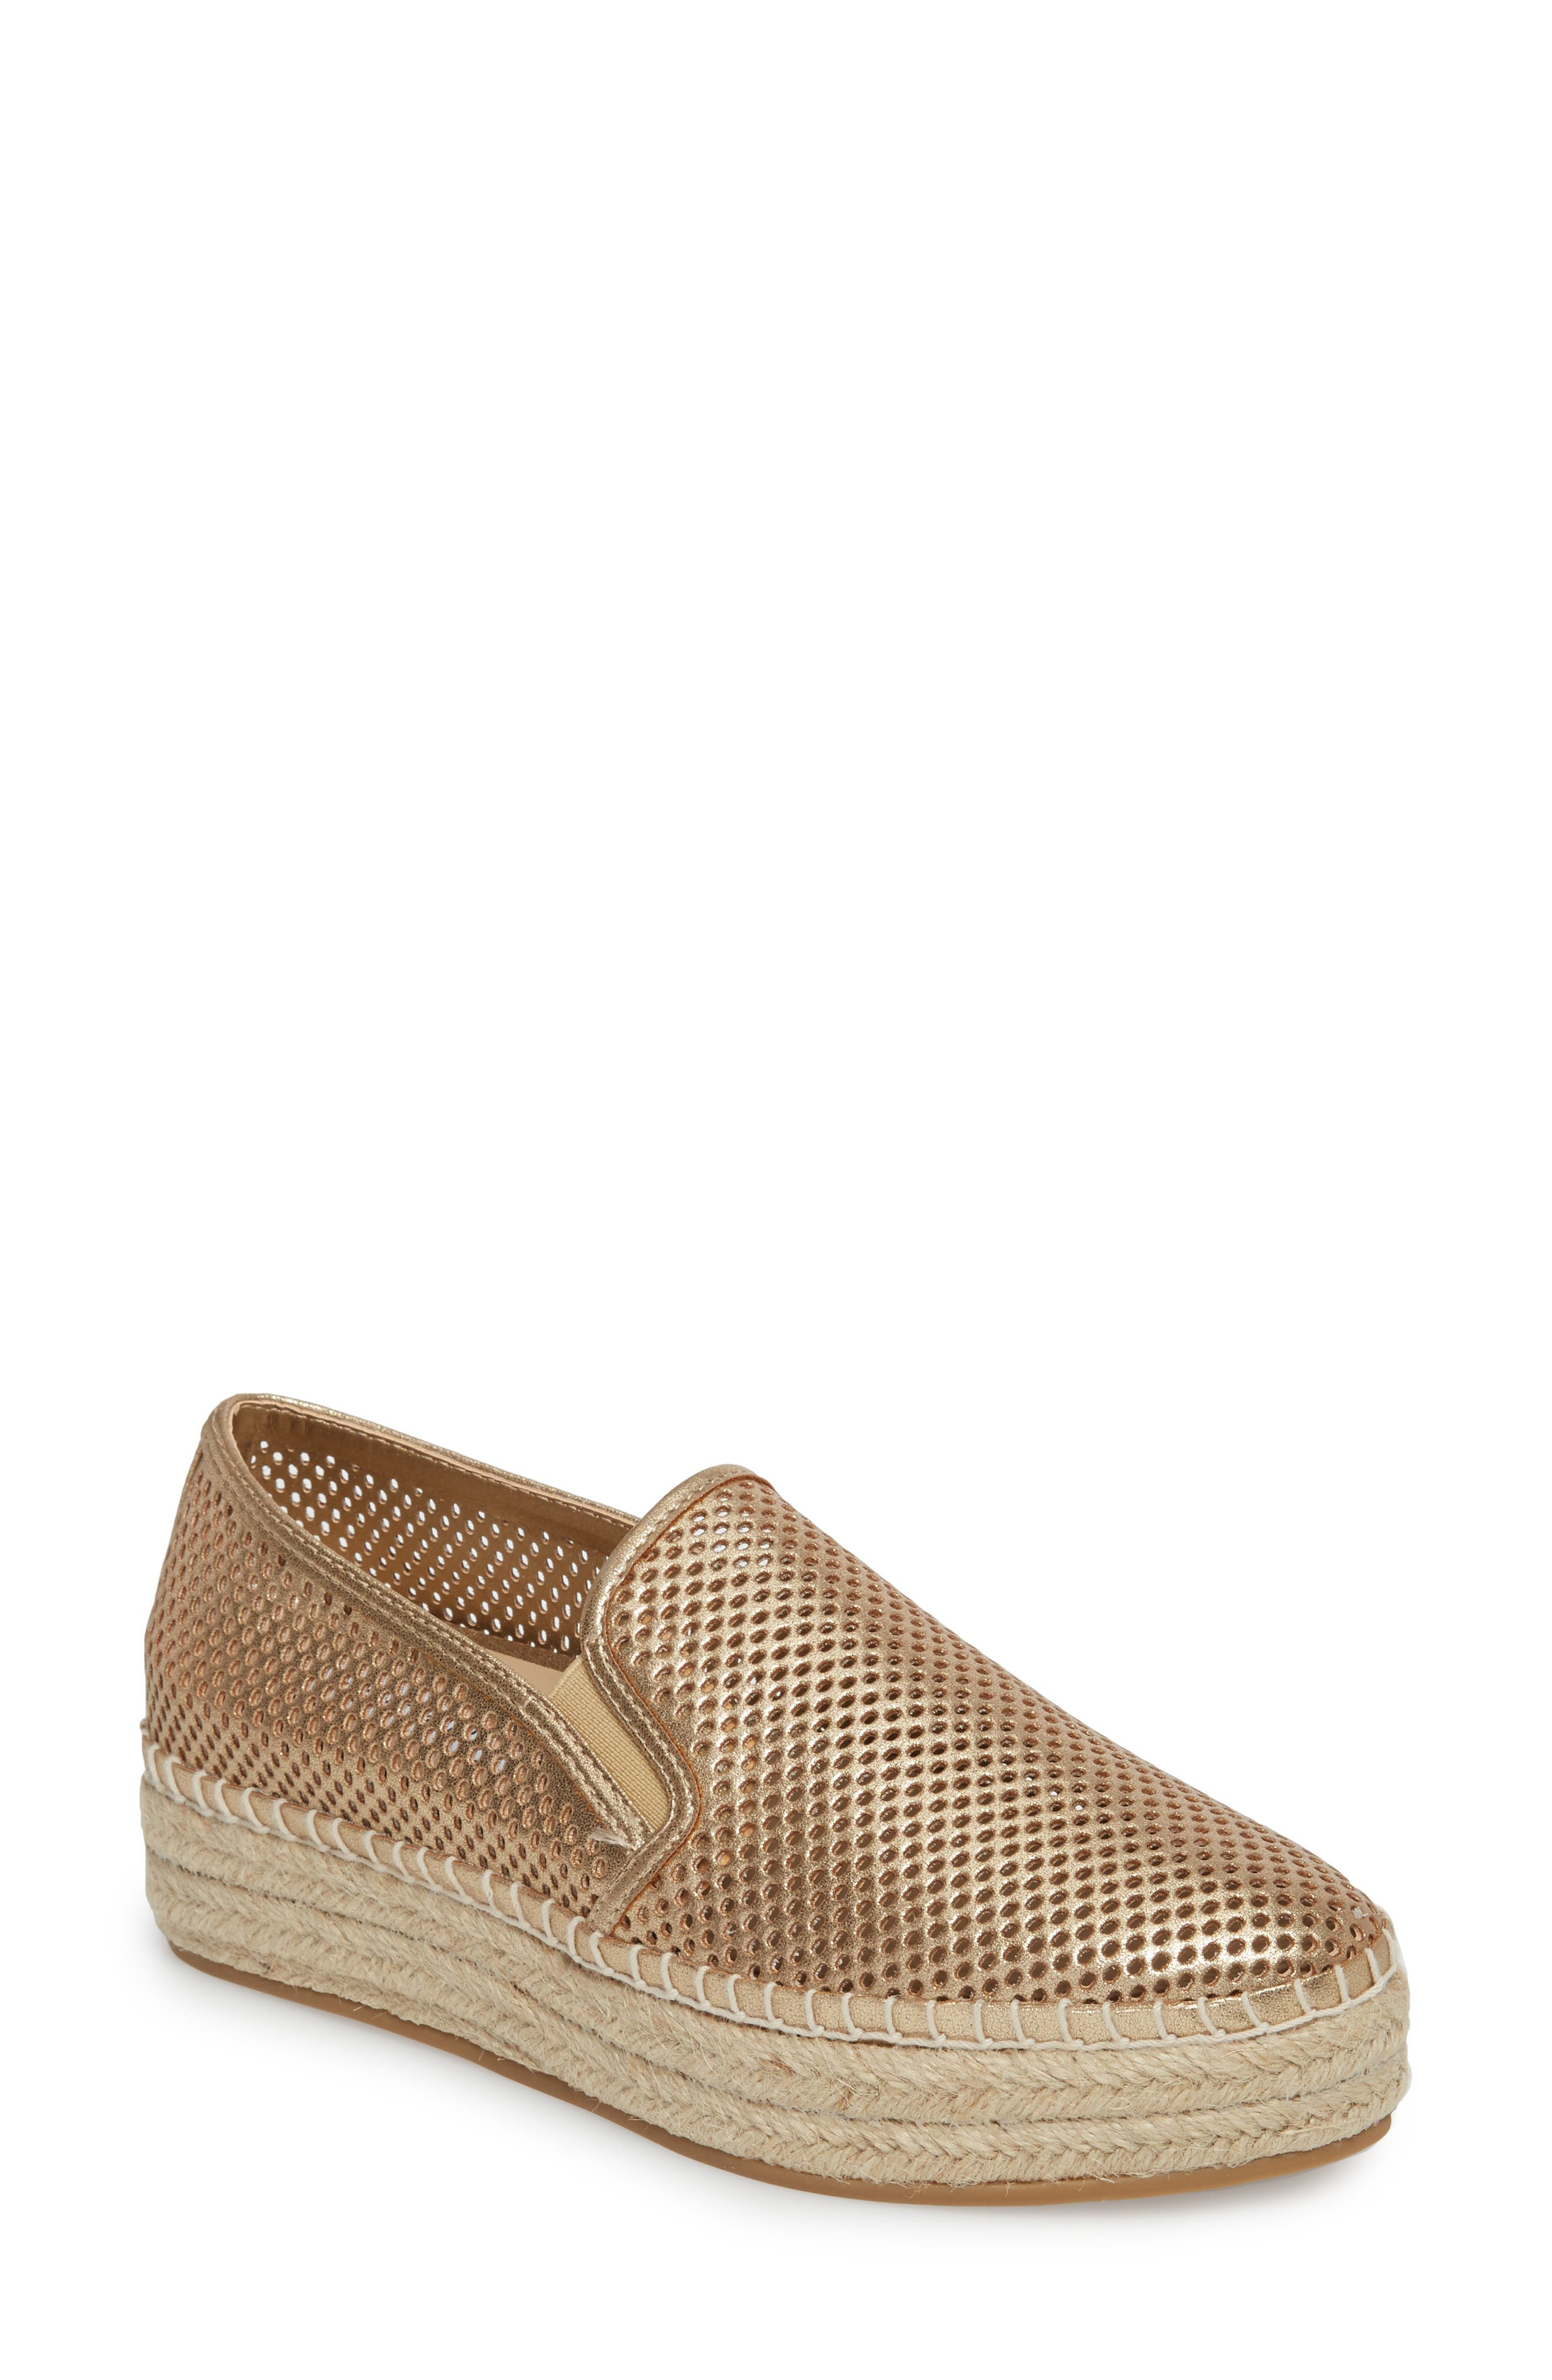 Alternate Image 1 Selected - Steve Madden Wright Perforated Platform Espadrille (Women)